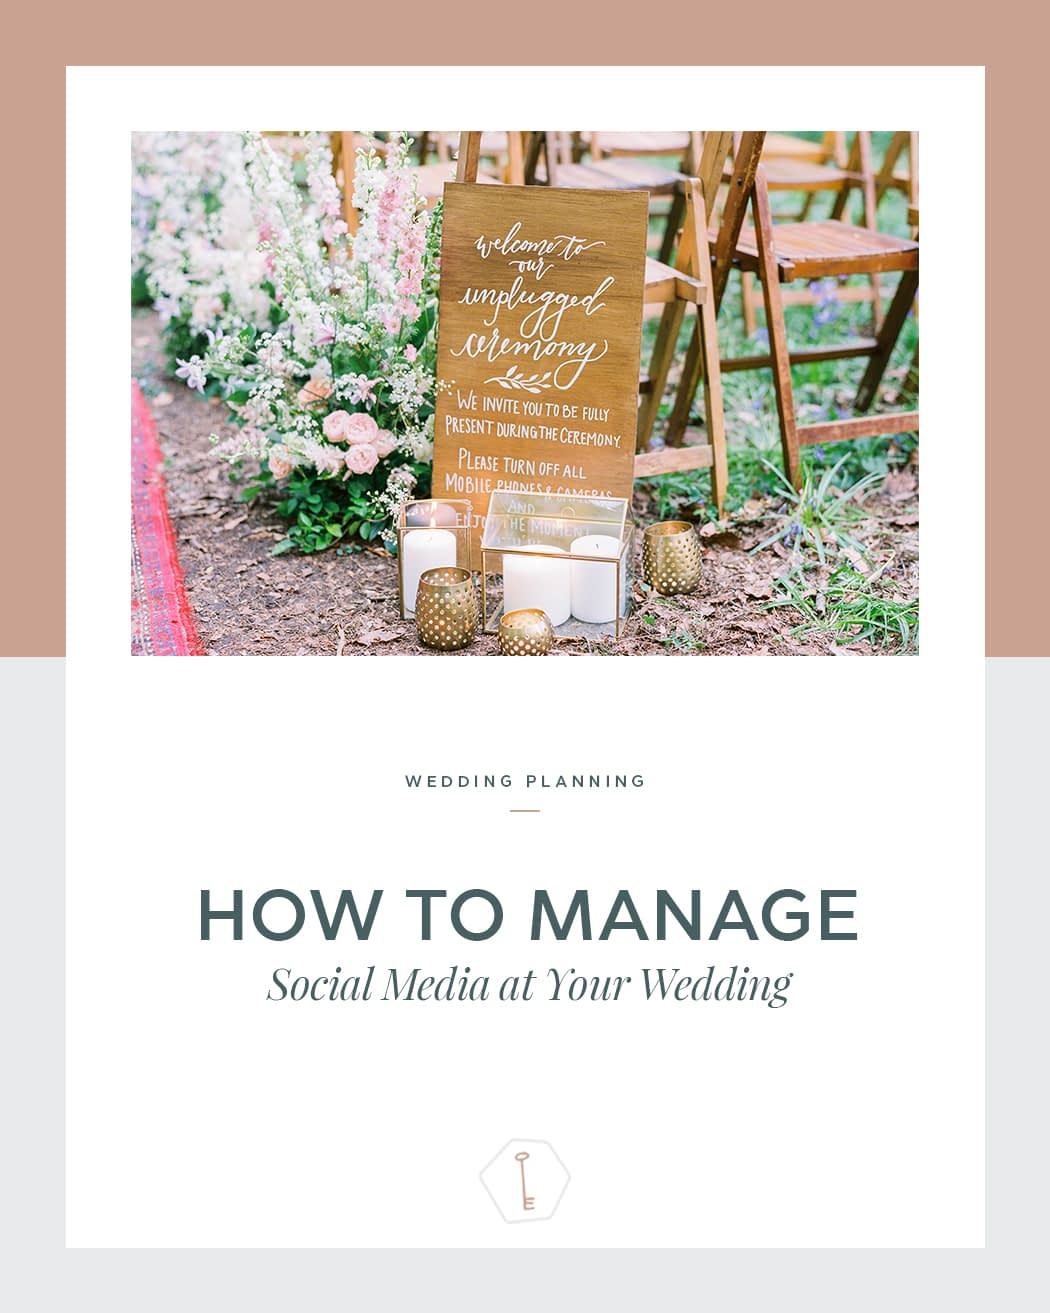 10-tips-for-how-to-manage-social-media-at-your-wedding-pin-it